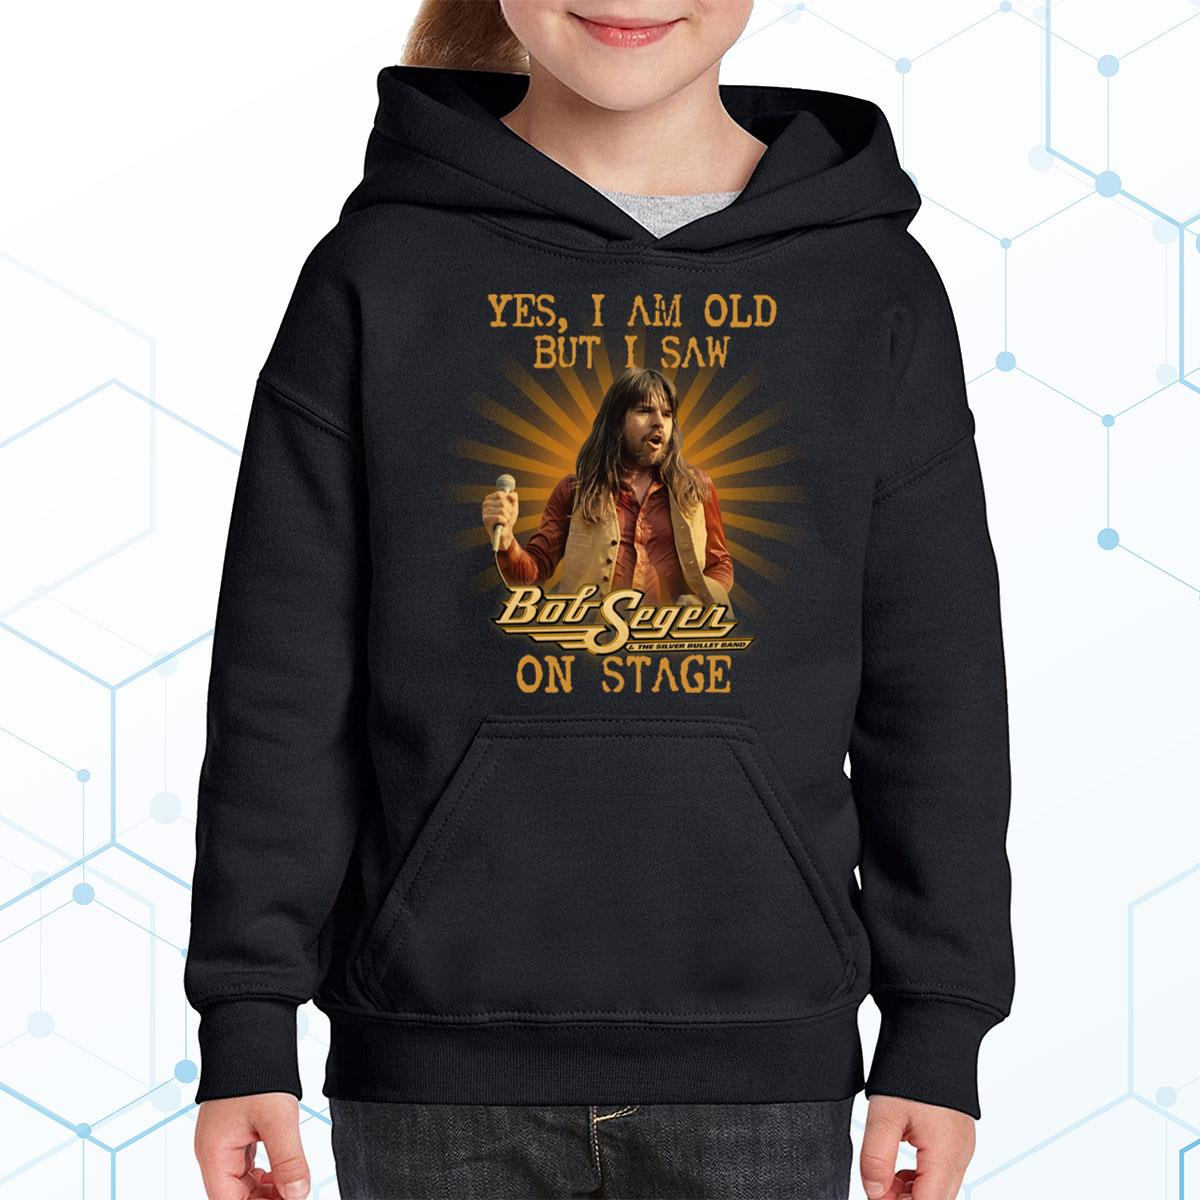 I Am Old But I Saw Bob Seger Premium Youth Hoodie